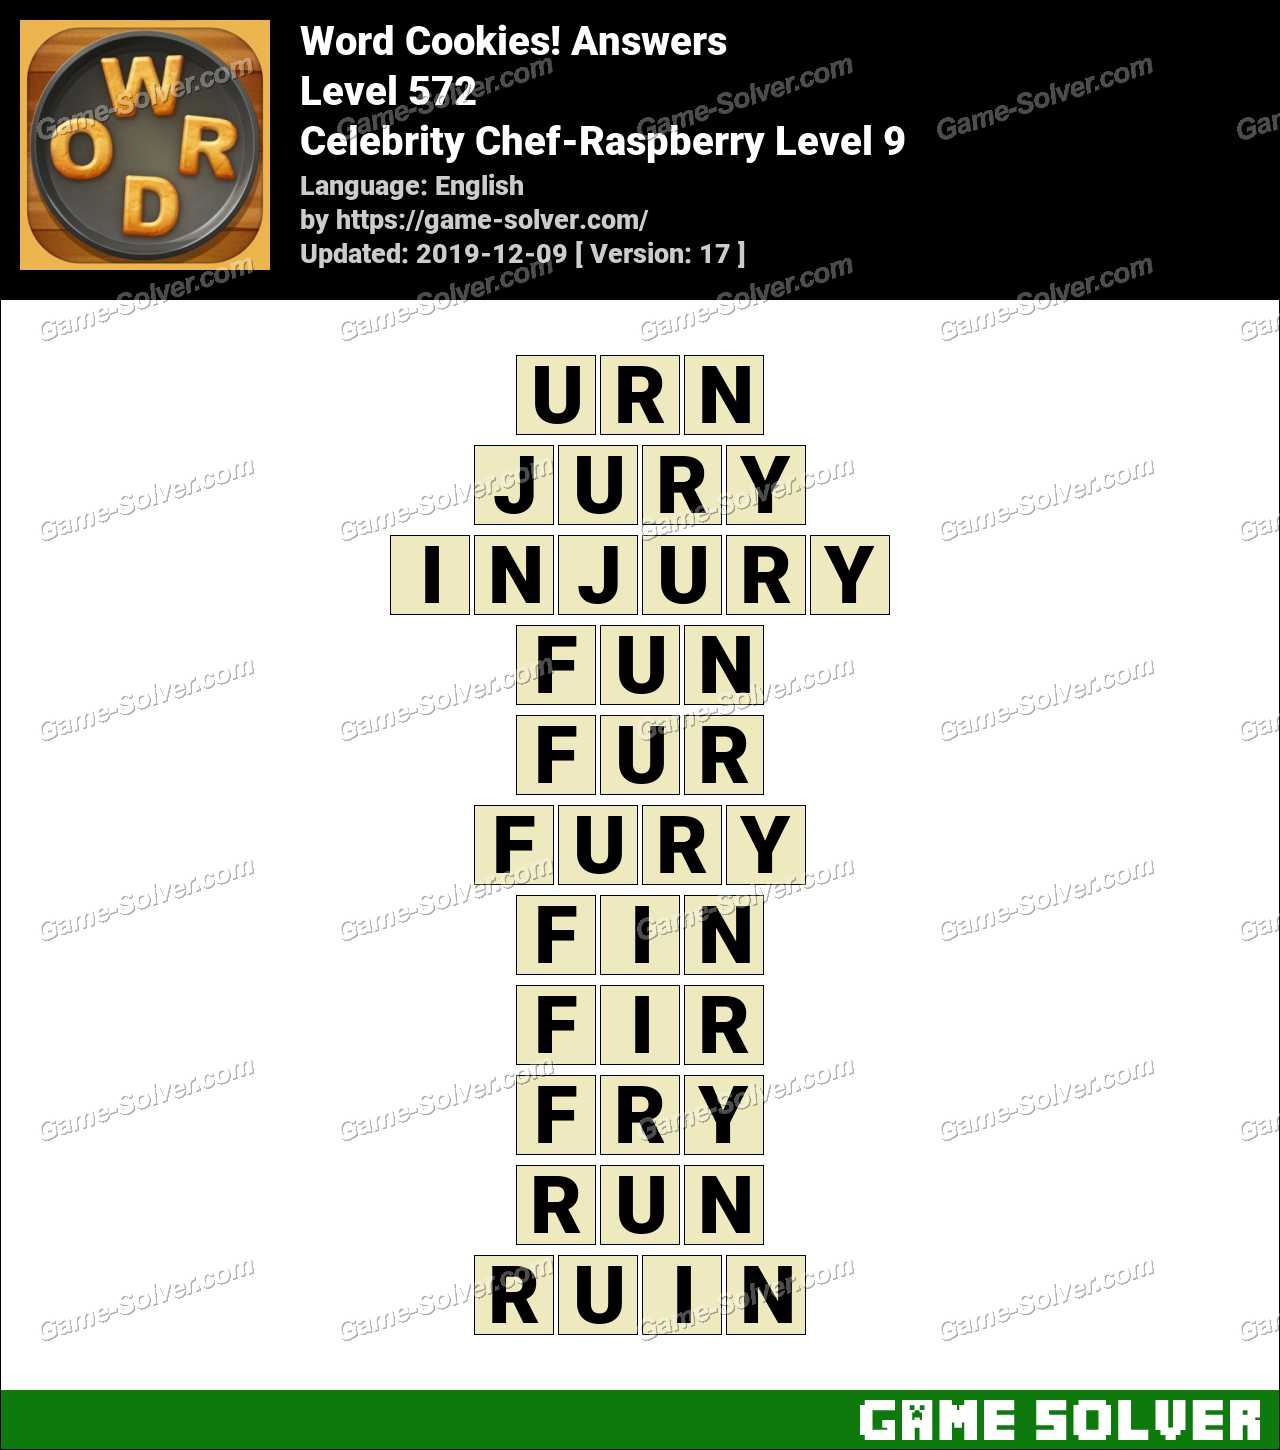 Word Cookies Celebrity Chef-Raspberry Level 9 Answers